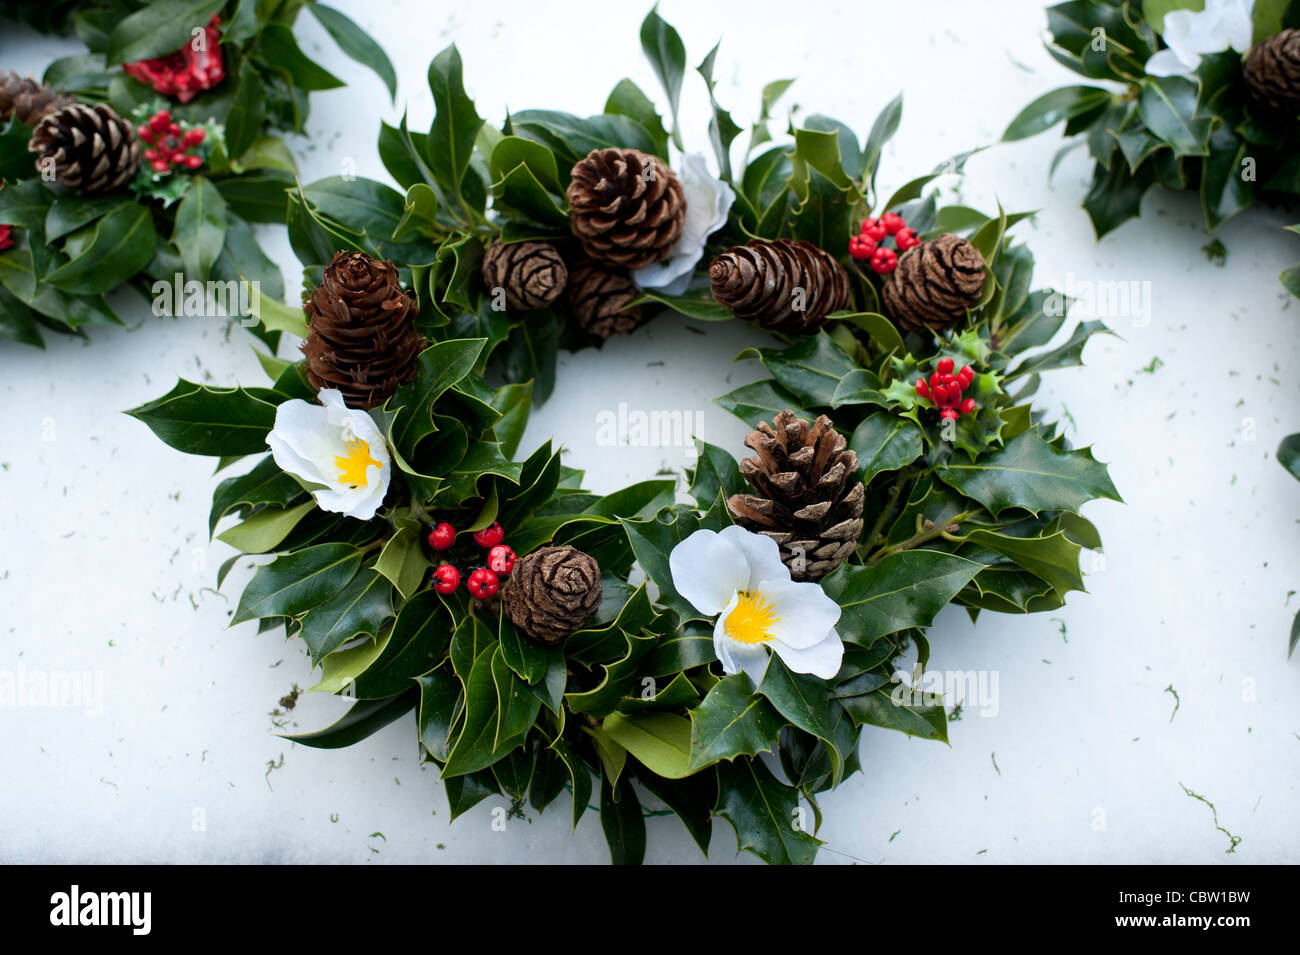 Traditional Hand Made Christmas Holly Wreaths On Sale At A Farmers Market Uk